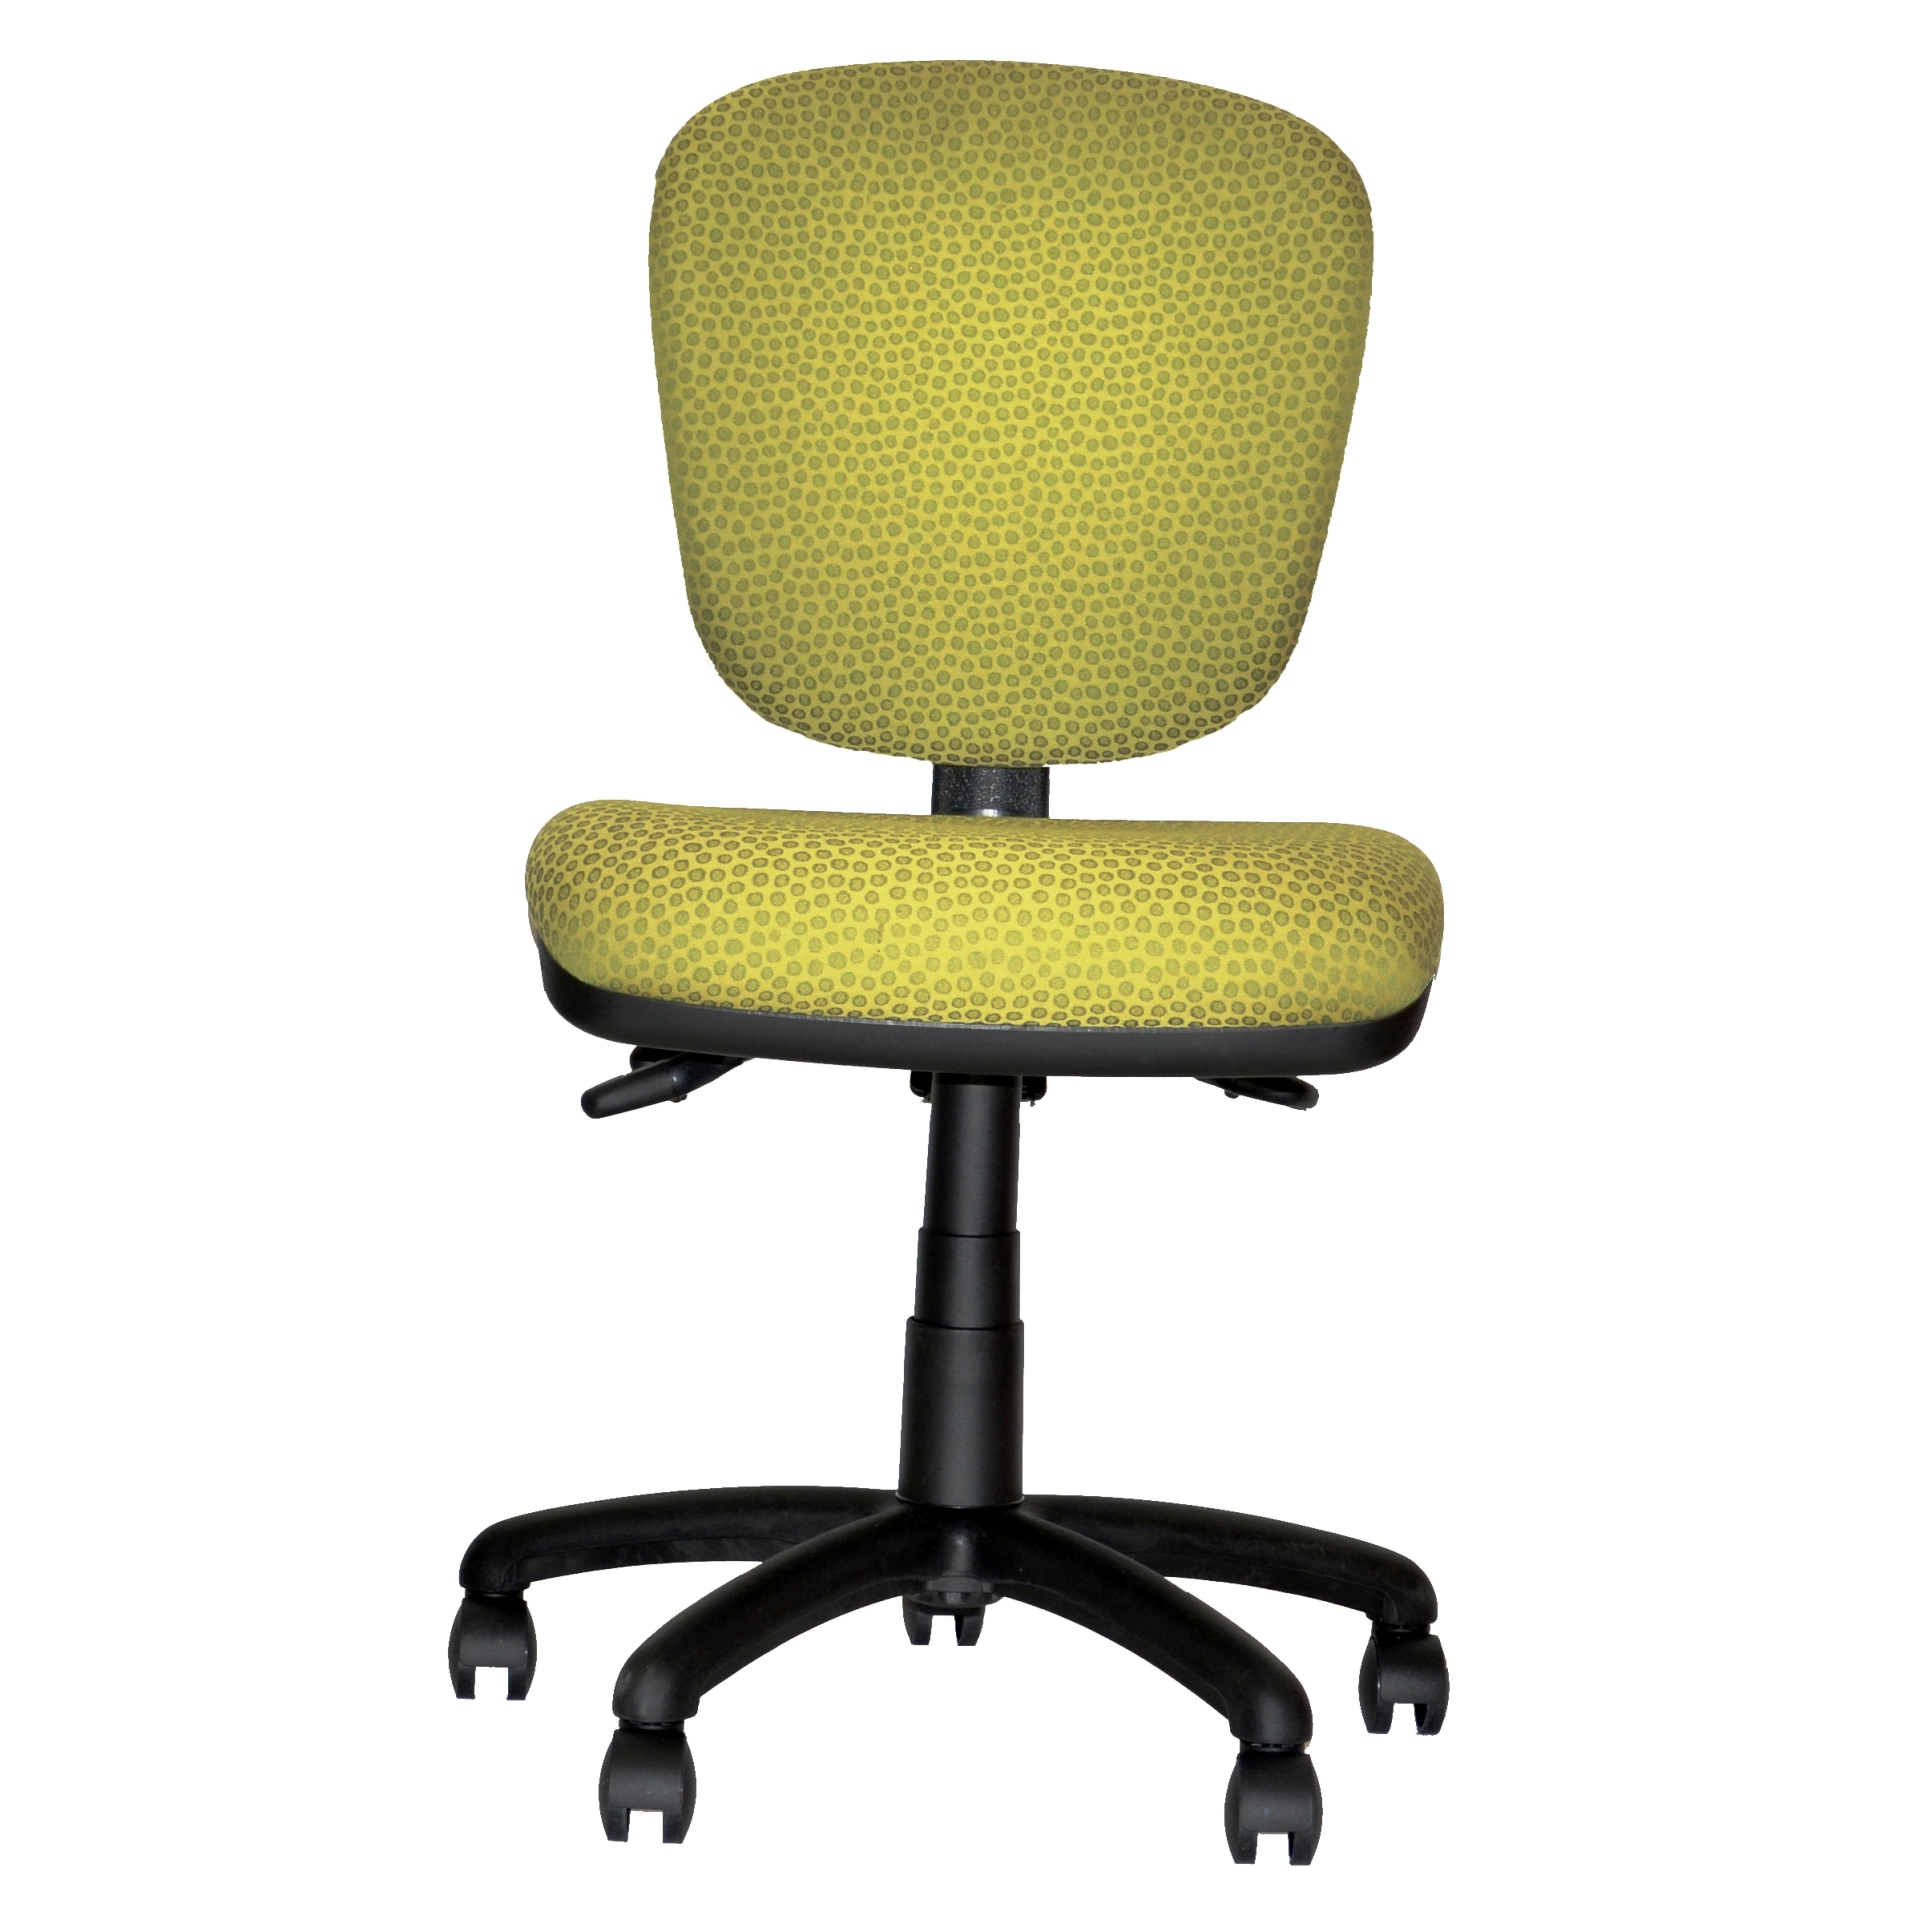 Direct Ergonomics | Sydney Office Furniture | Ergonomic Furniture | Ergonomic Seating | Executive and Task Seating | Ergonomic Chair | Marco